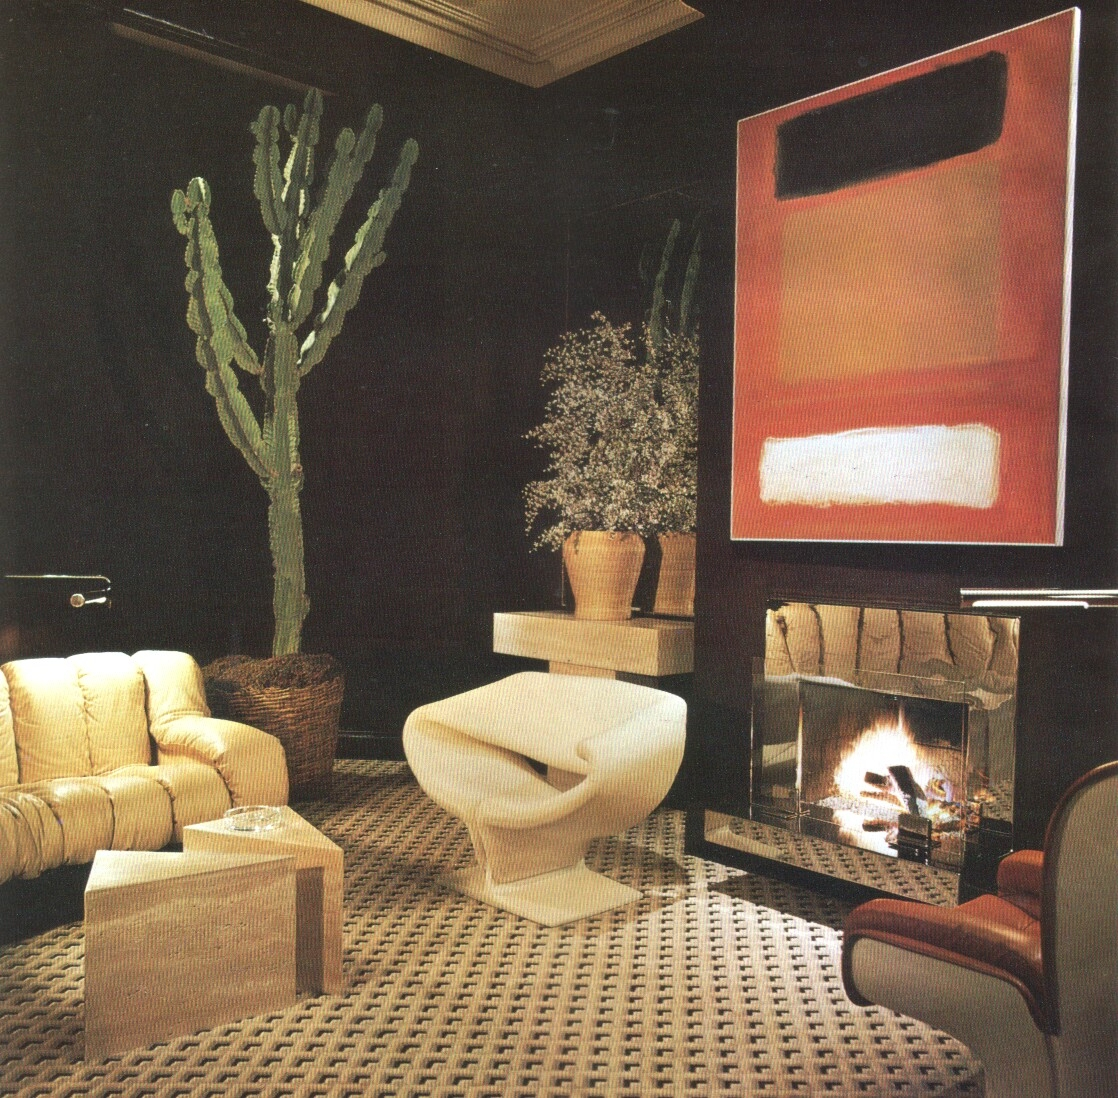 1970s interior design living ro - modernism_is_crap | ello